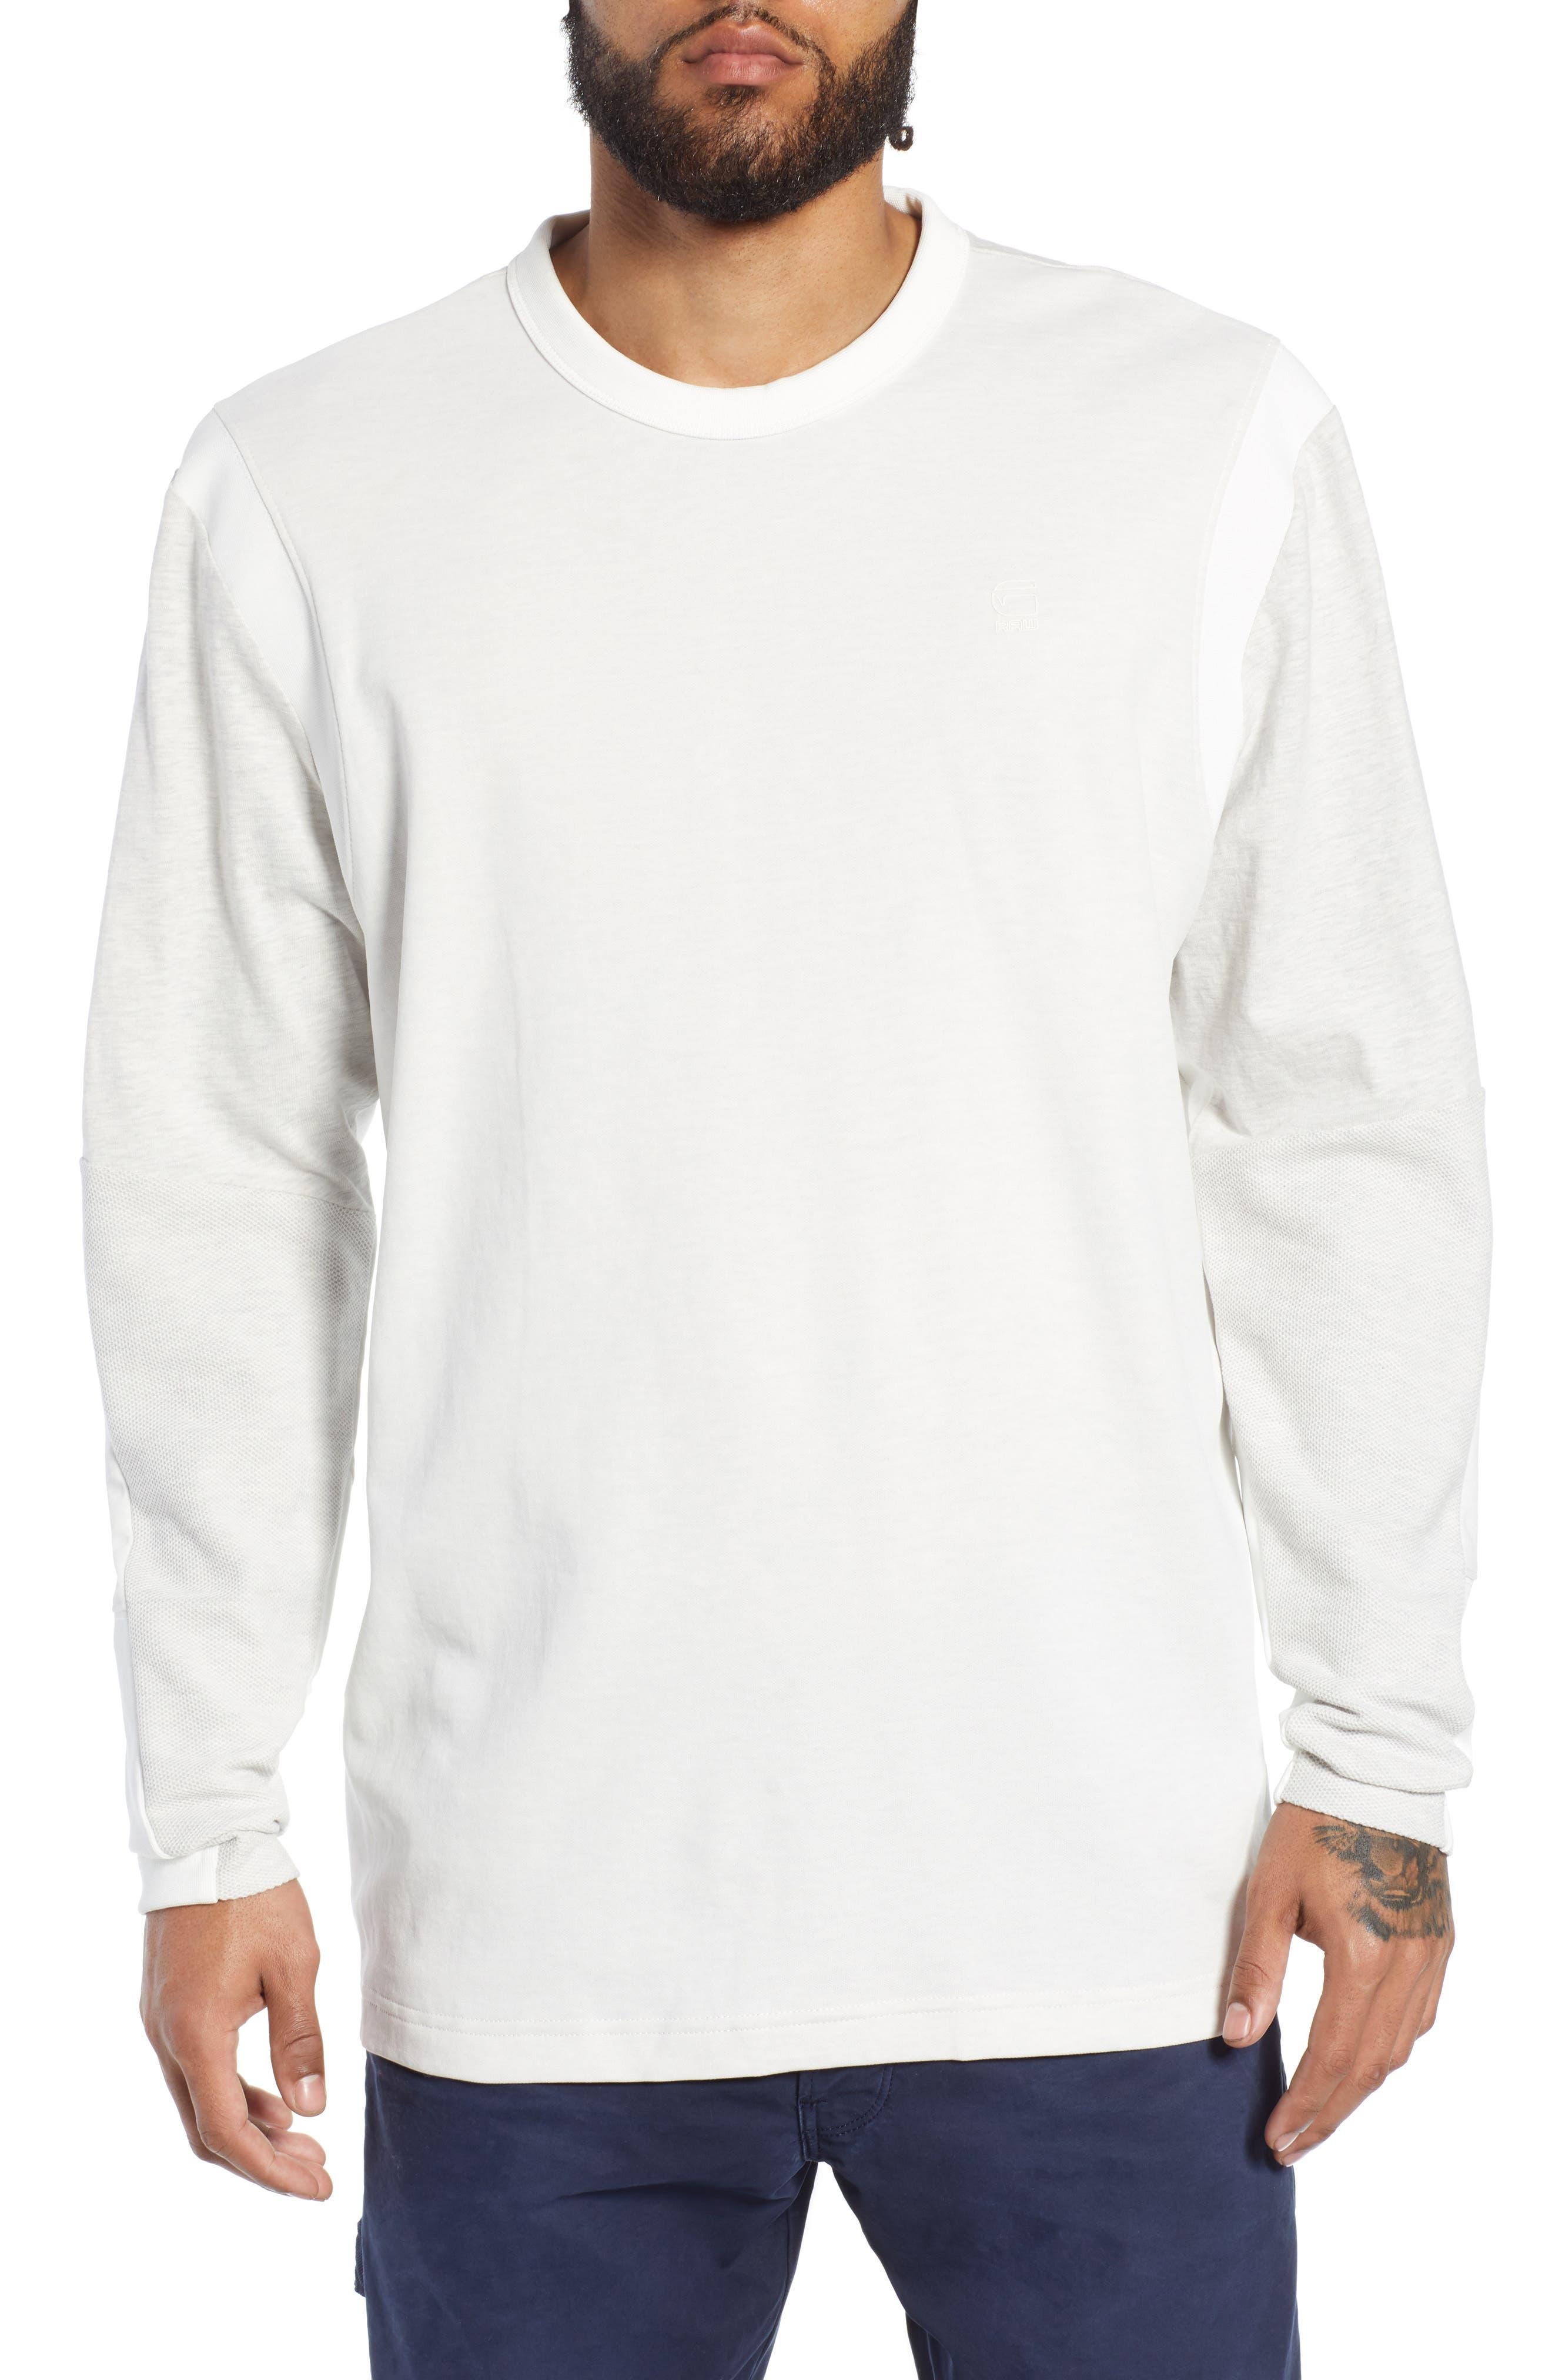 Motac Long Sleeve T-Shirt,                         Main,                         color, WHITE HEATHER